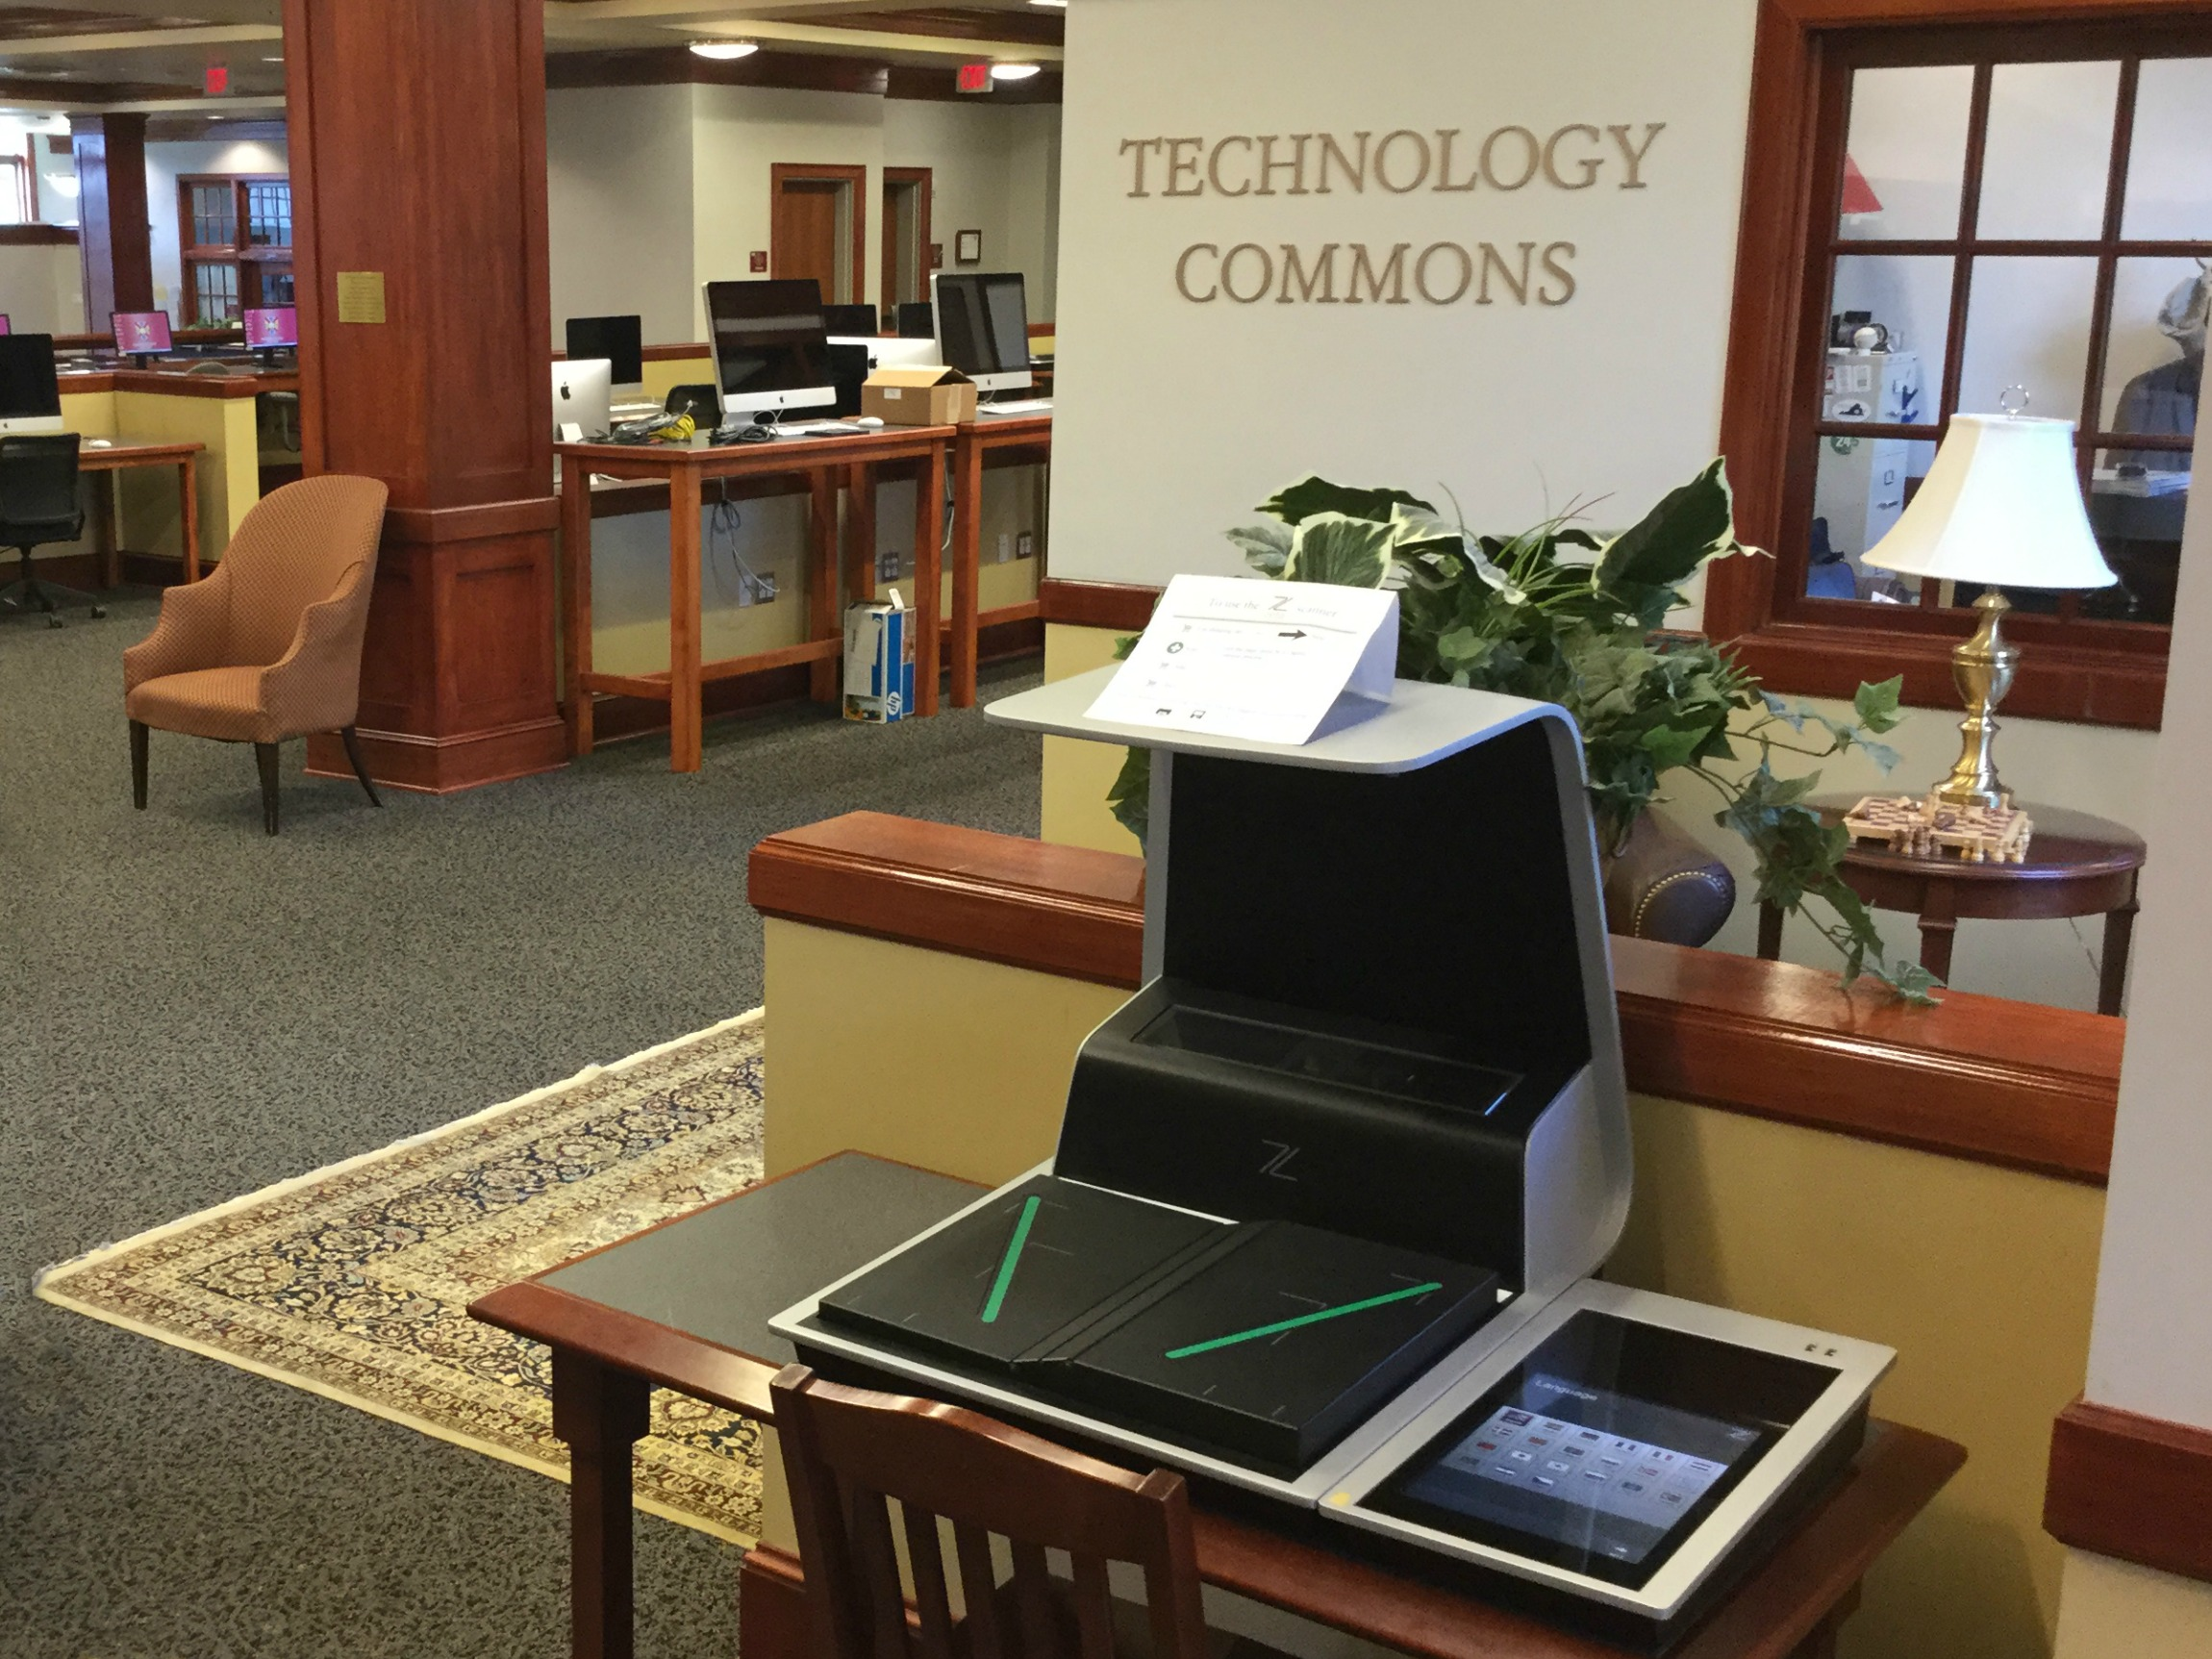 The Technology Commons provides support on the second floor.